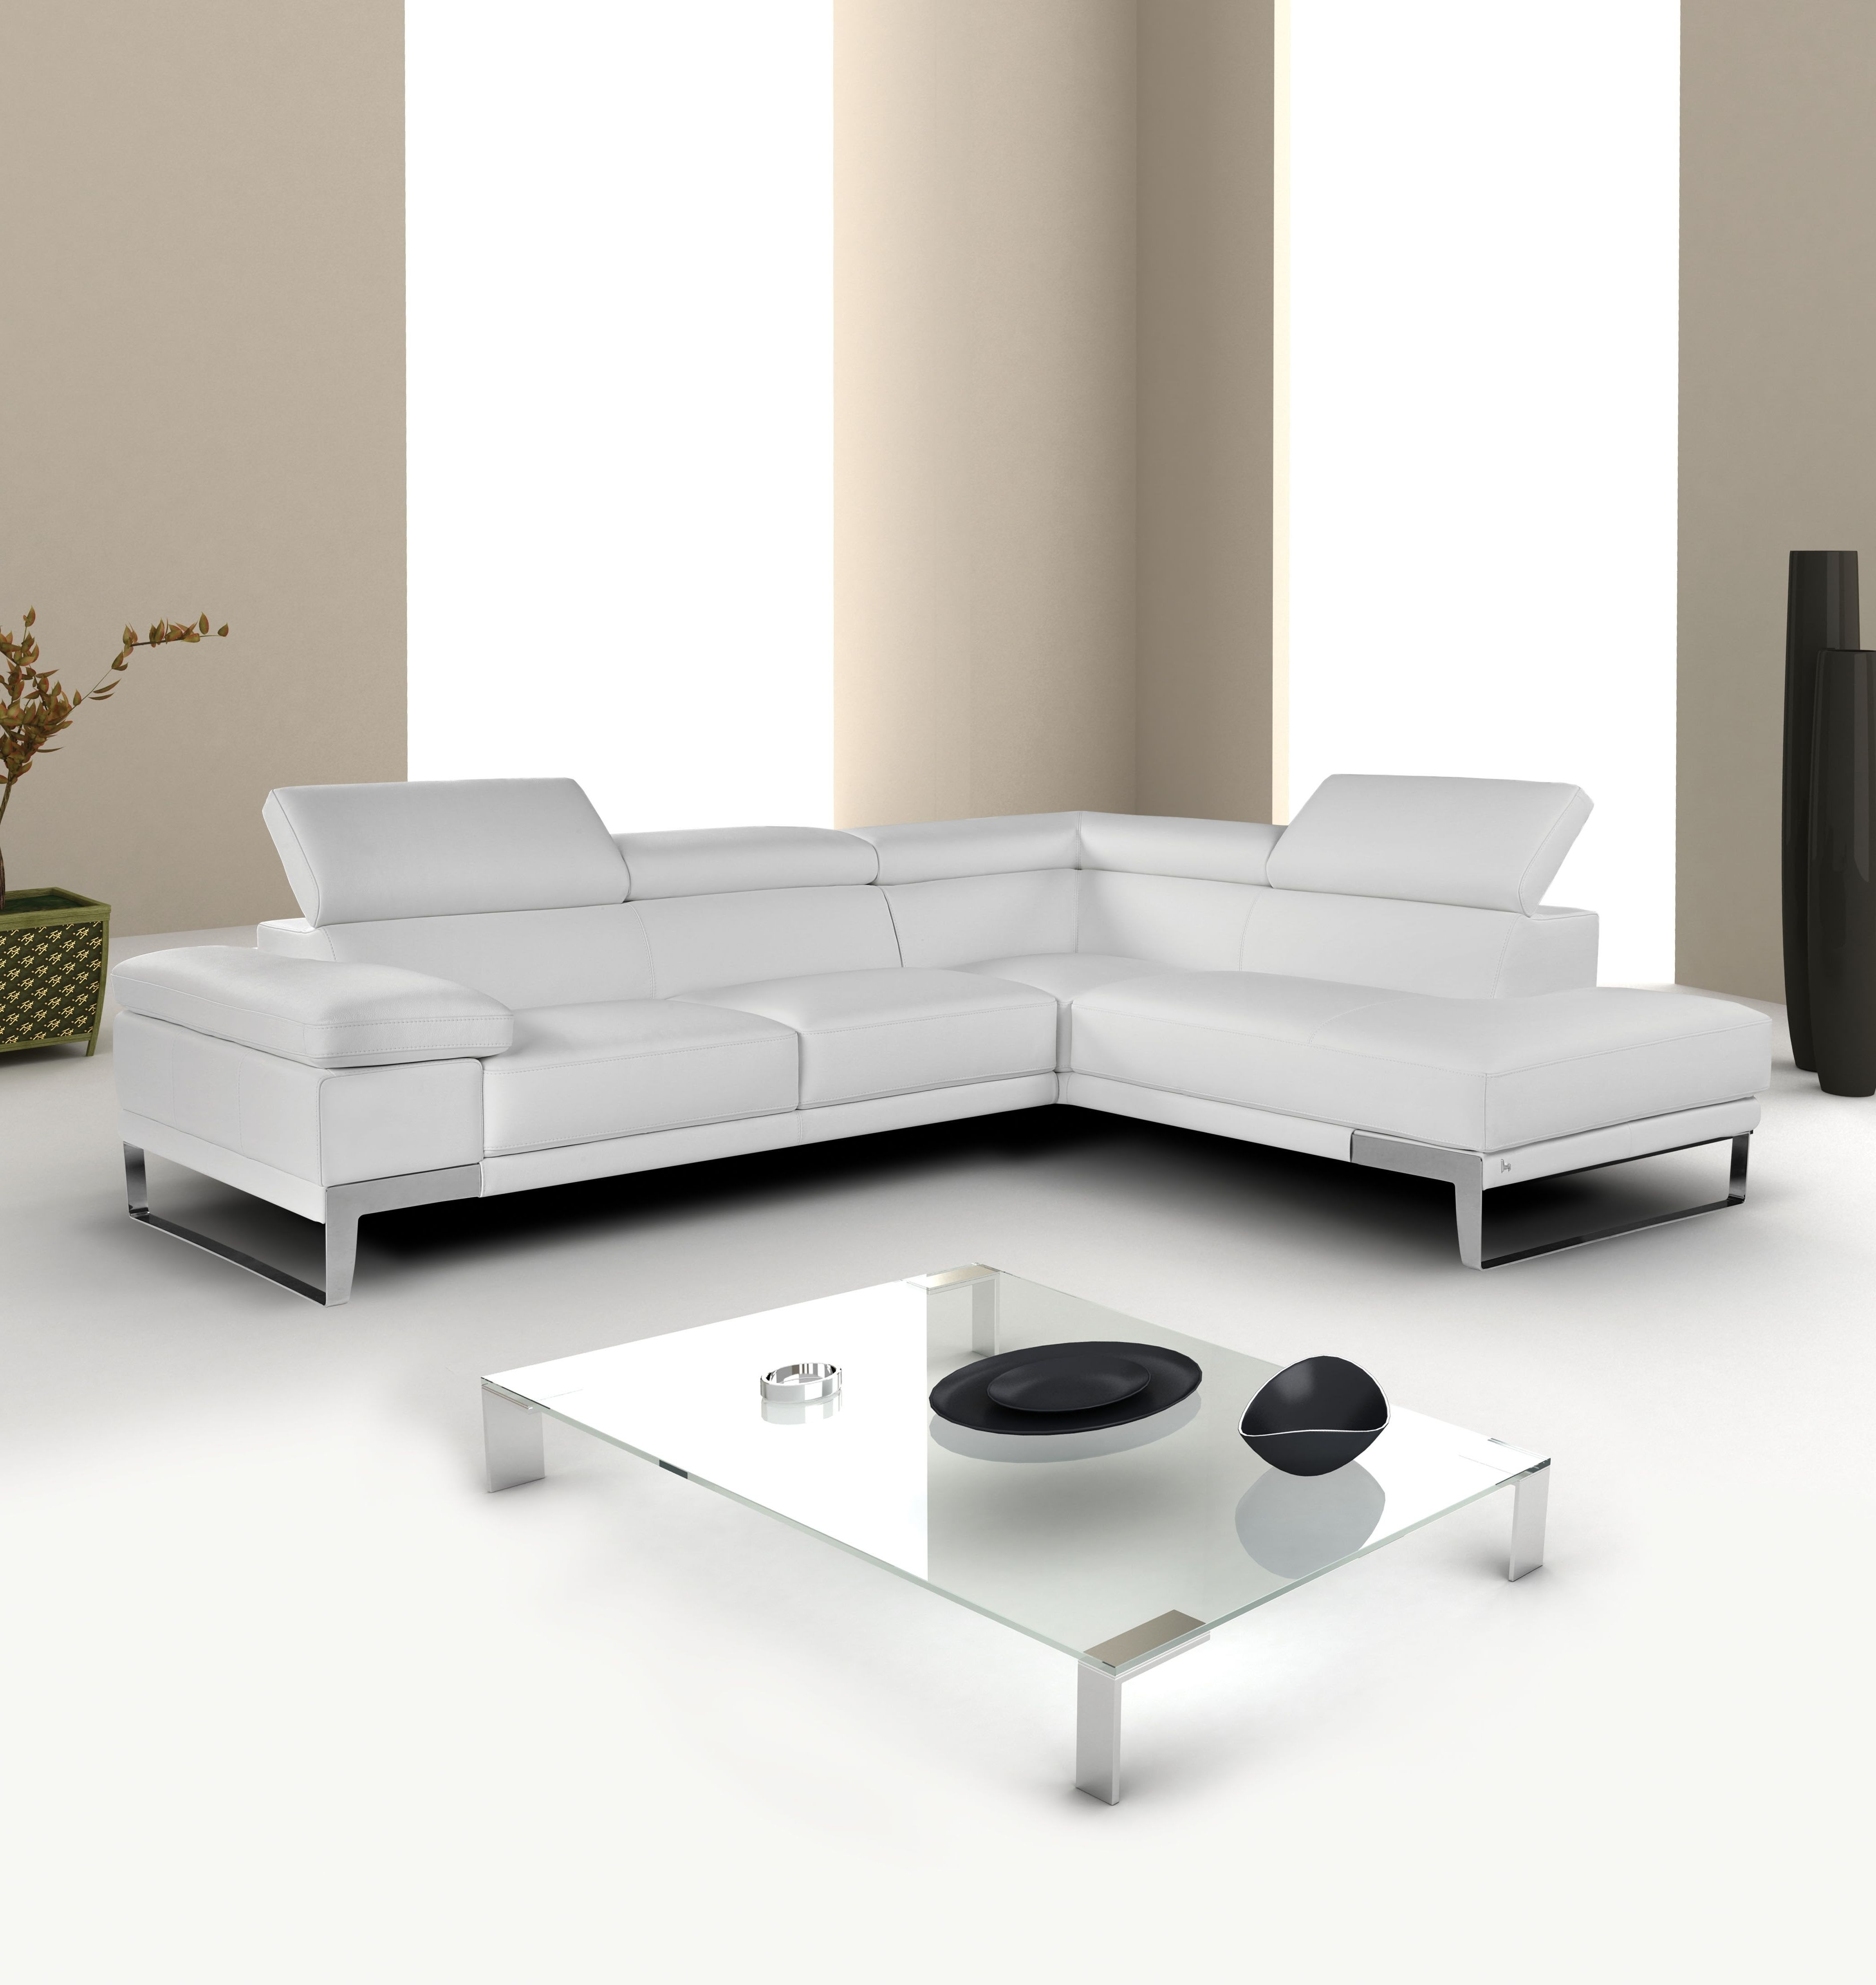 Vancouver Bc Canada Sectional Sofas Regarding Most Recently Released Sectional Modern Sofa Interior White Button Leather Furniture (View 11 of 20)